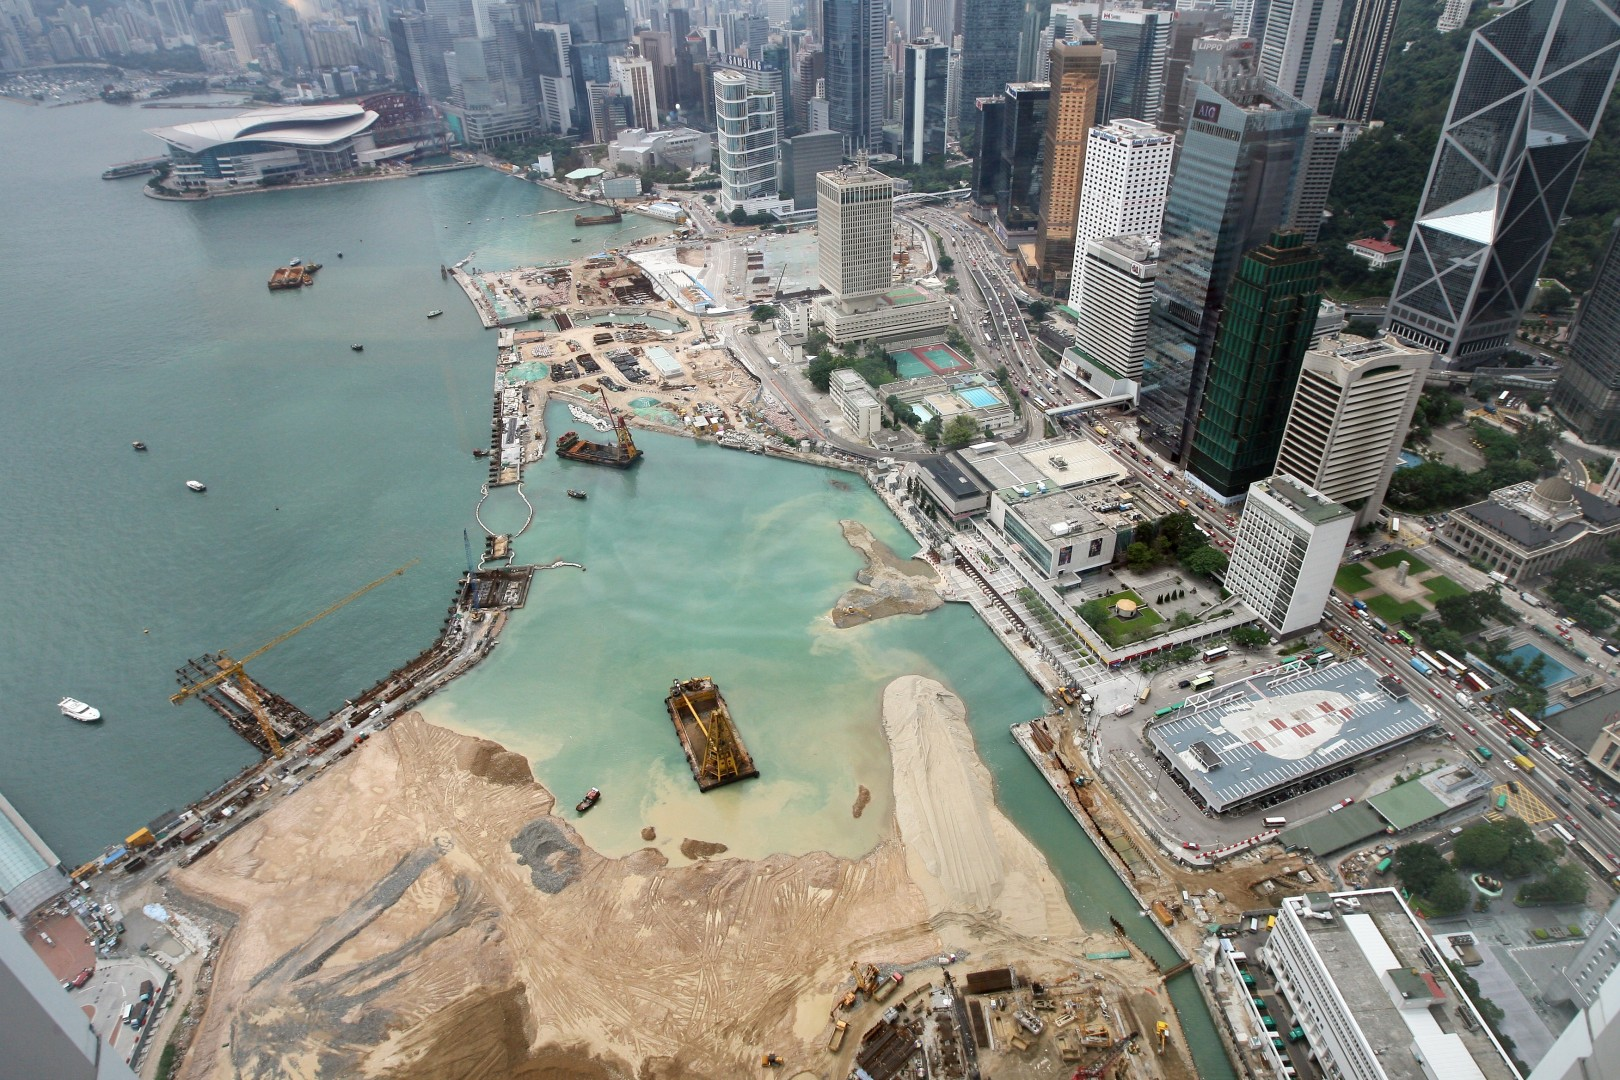 Hong Kong land reclamation explained: the good, bad and ugly